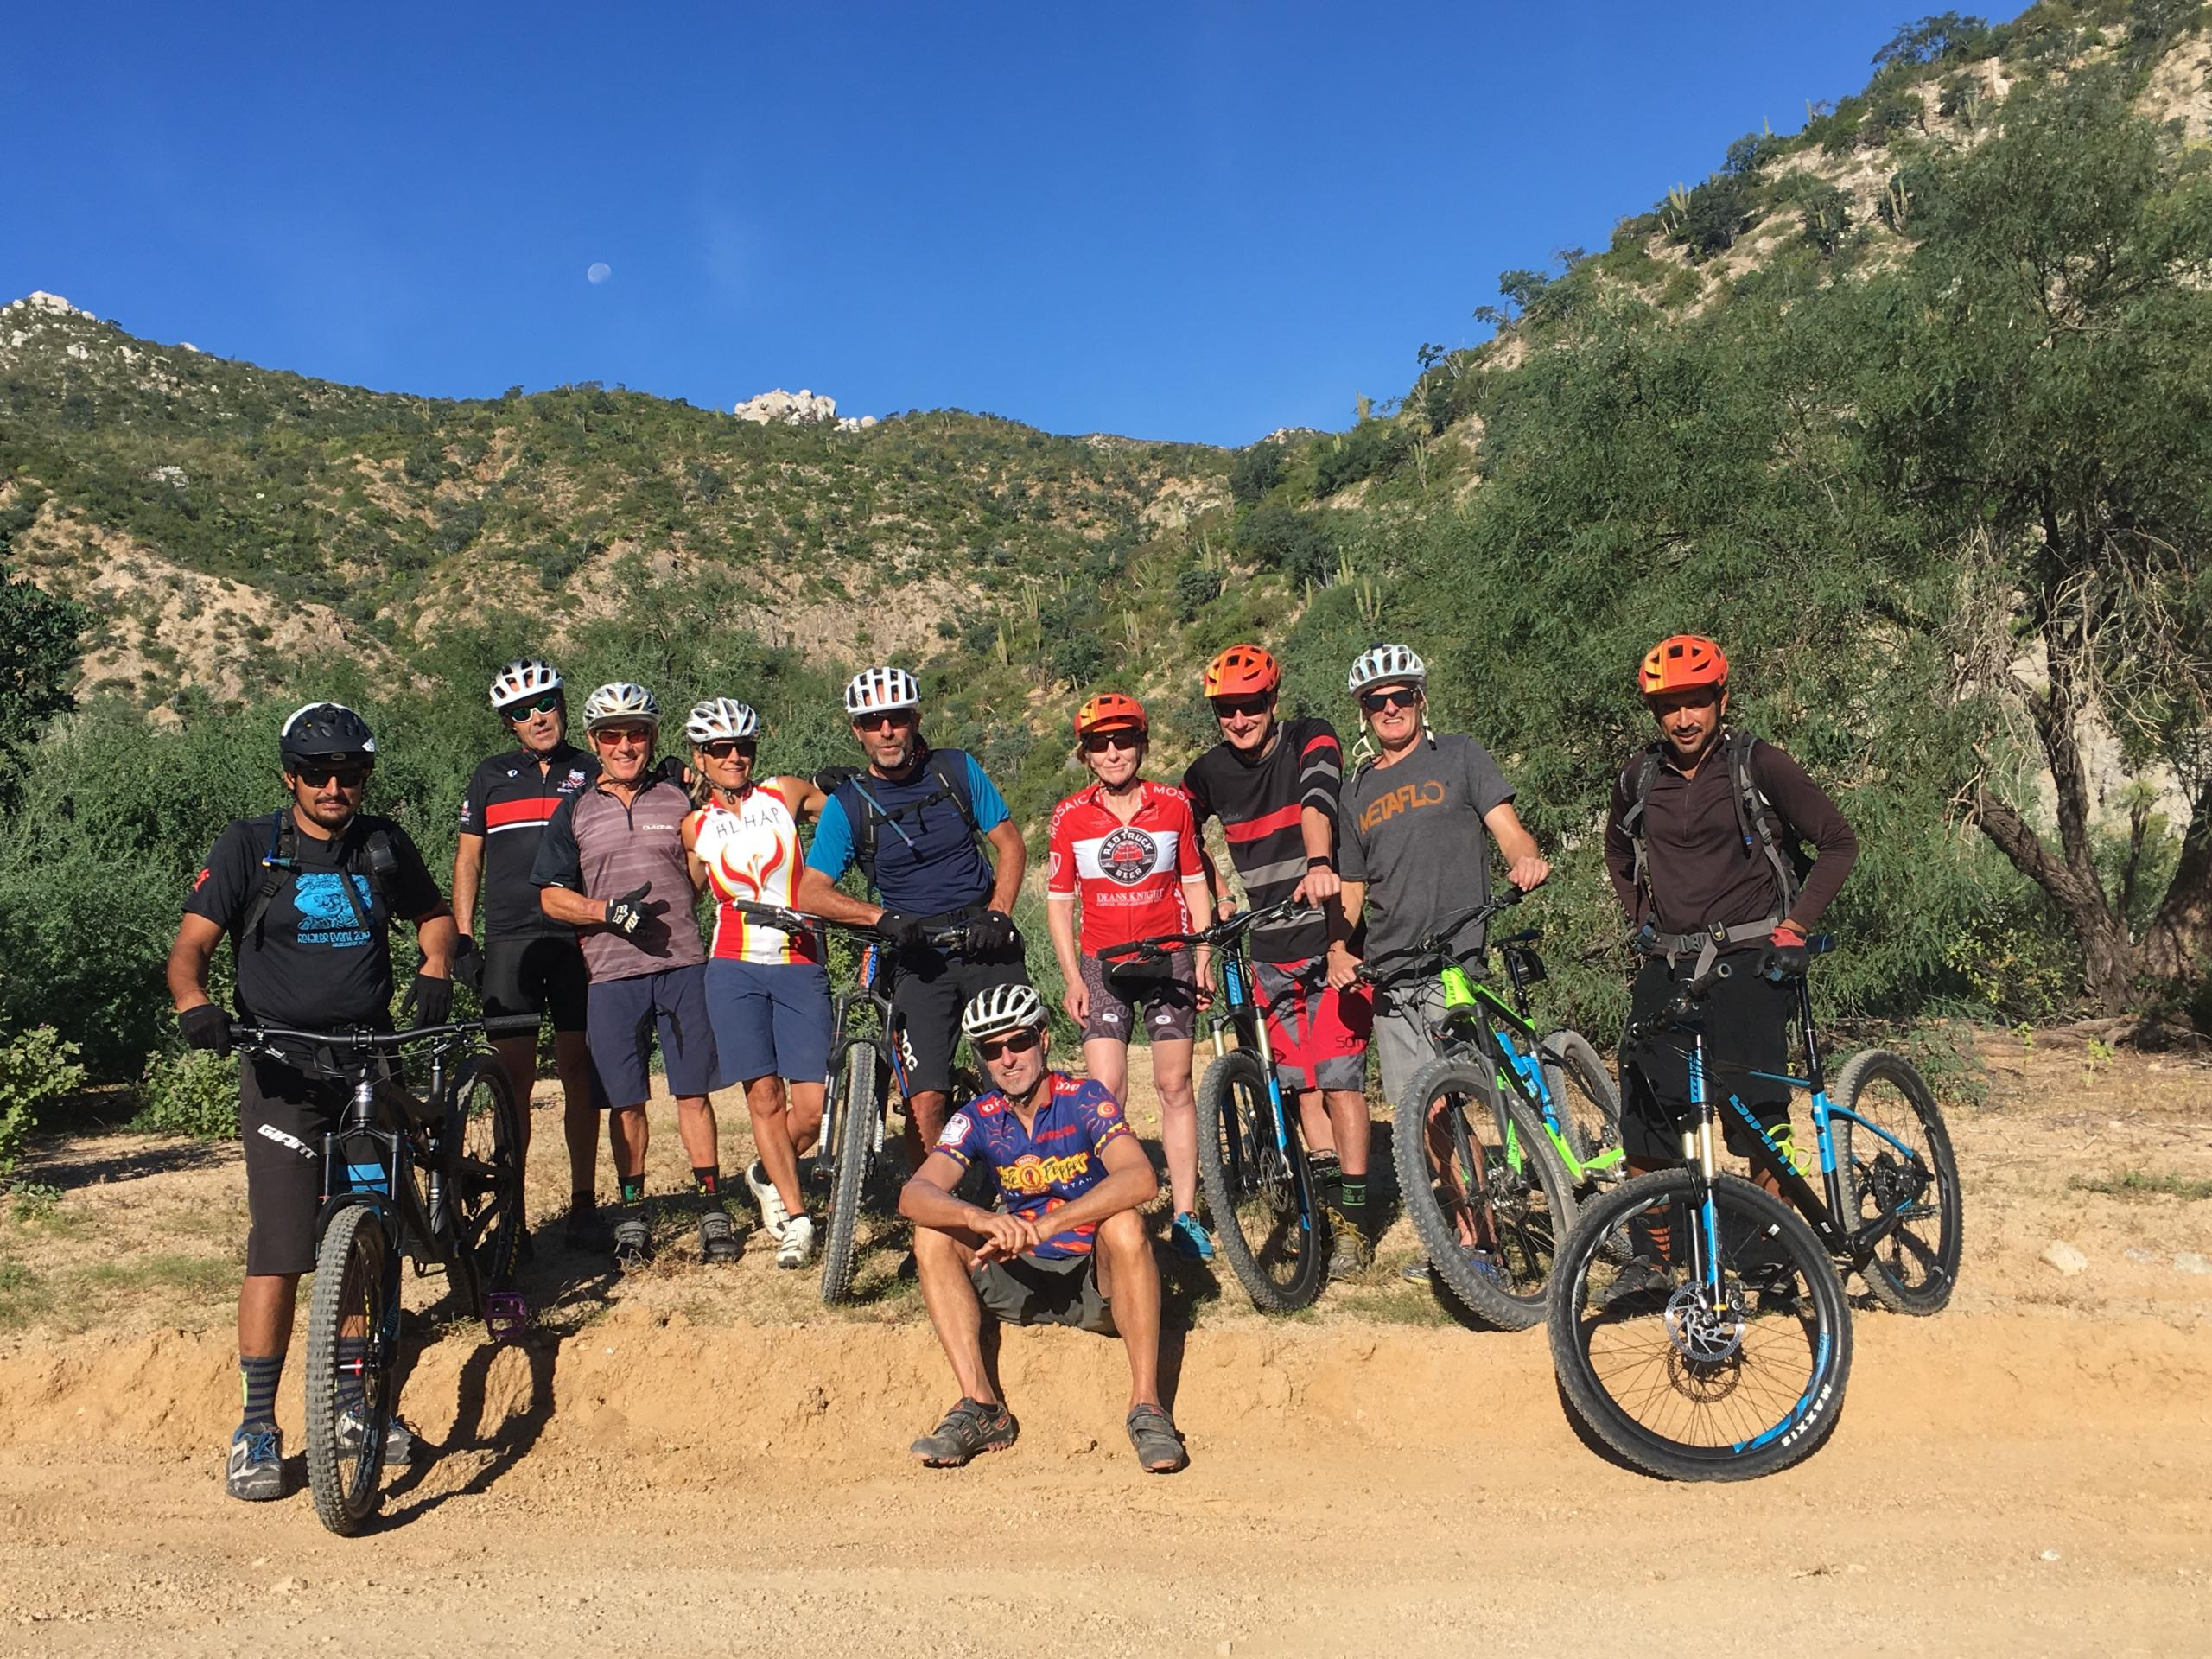 Grant Lamont Spa Ambassador with biking group